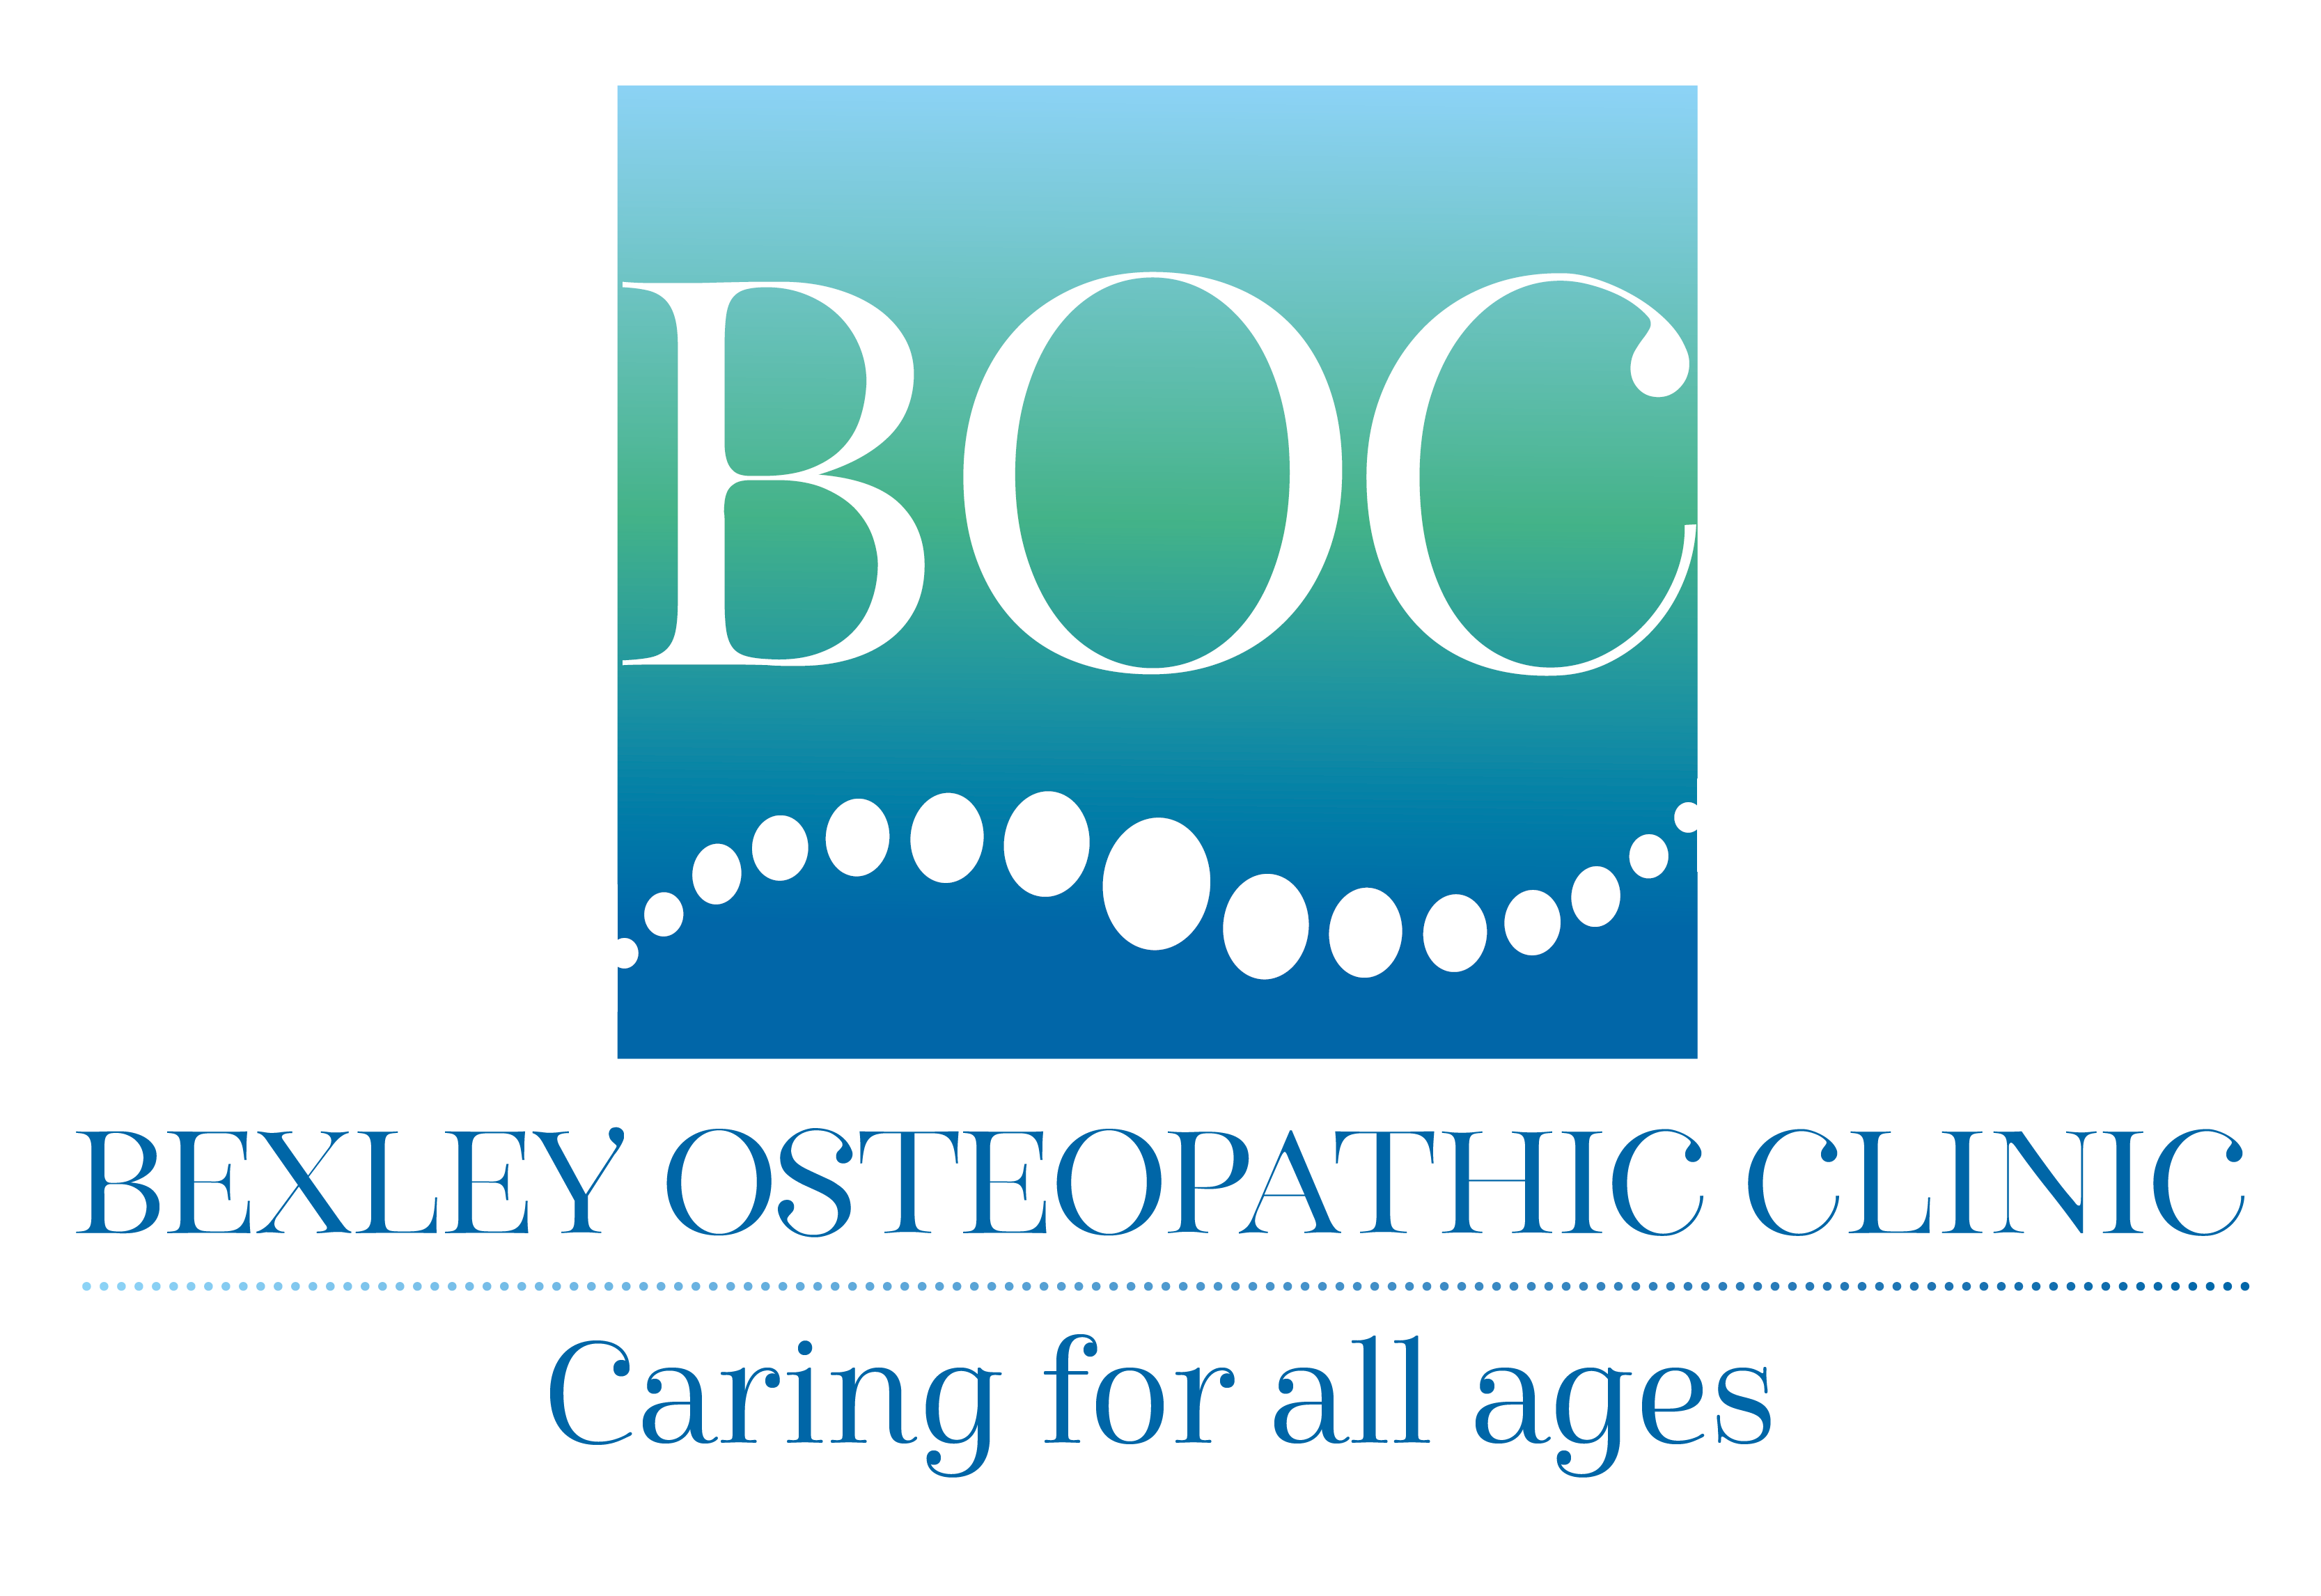 Bexley Osteopathic Clinic